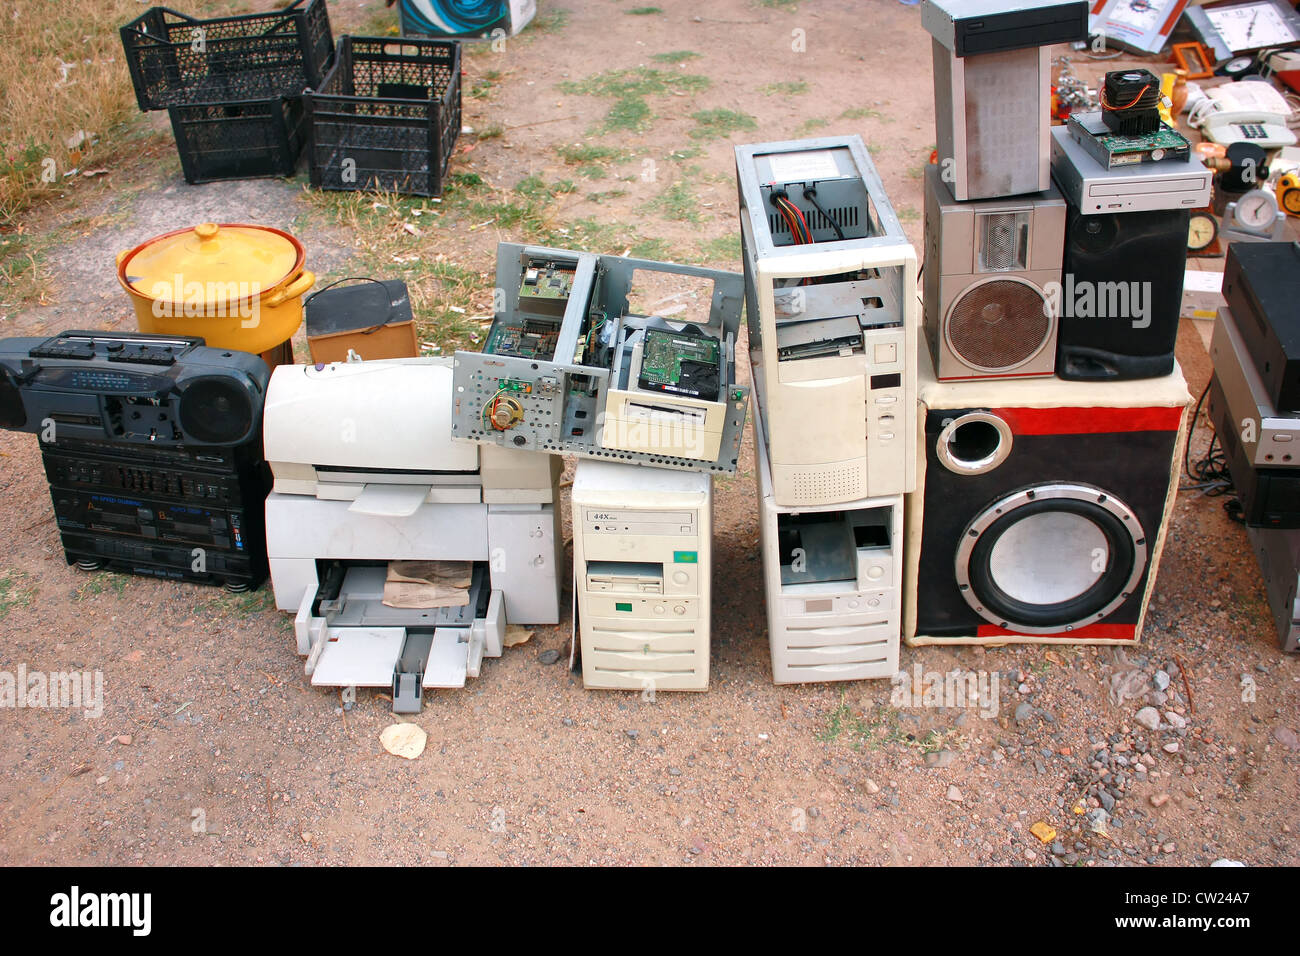 Old computer parts and electronic junk in flea market - Stock Image